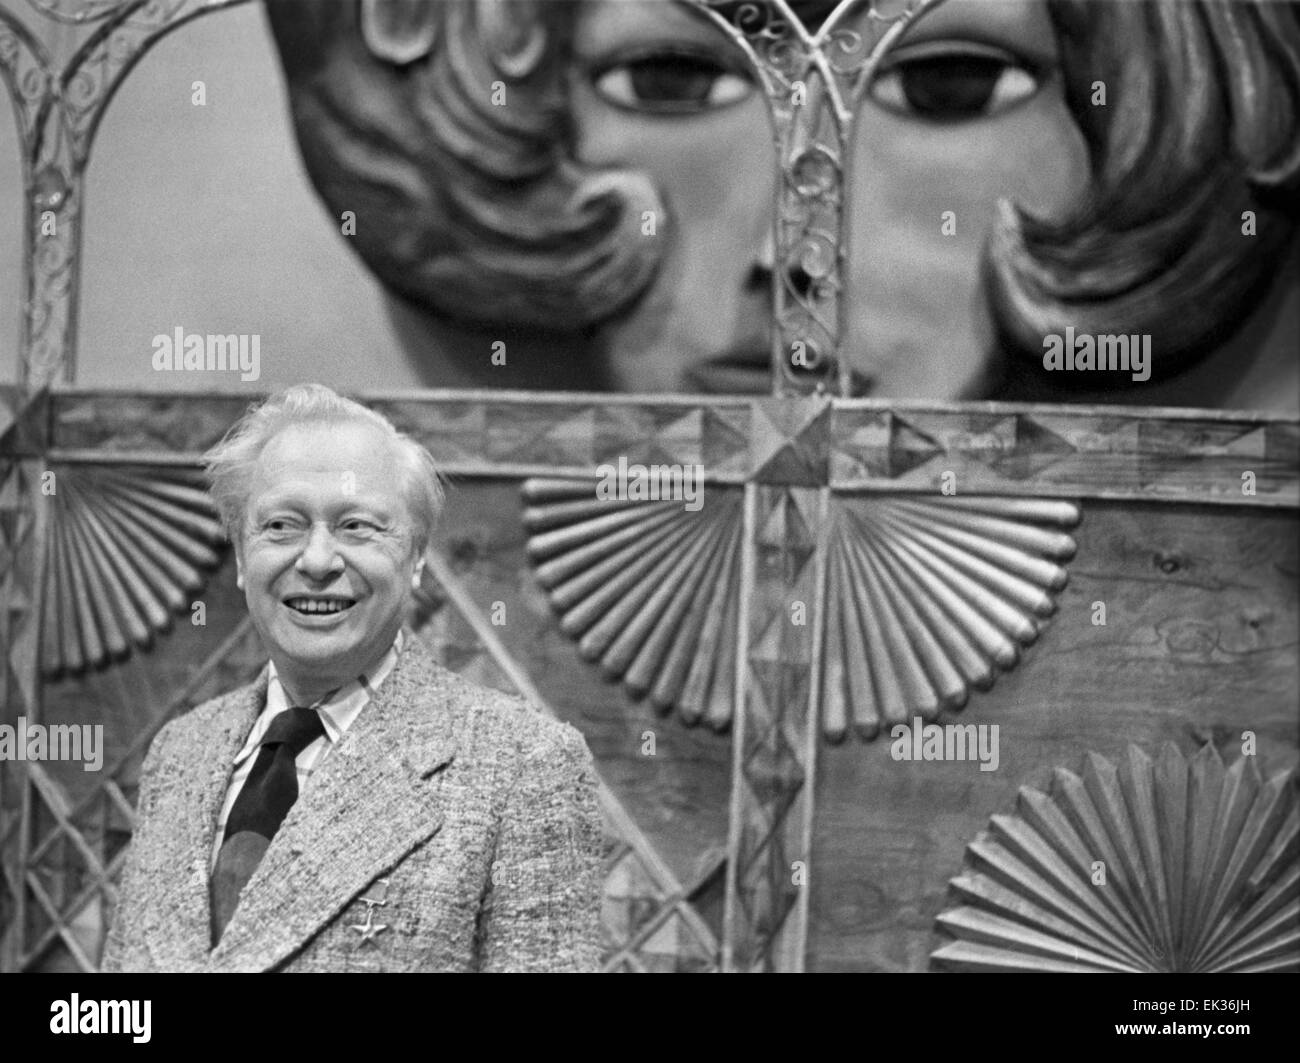 ITAR-TASS: USSR, MOSCOW. Soviet and Russian puppeteer, director of Central Moscow Puppet Theatre Sergey Obraztsov. - Stock Image